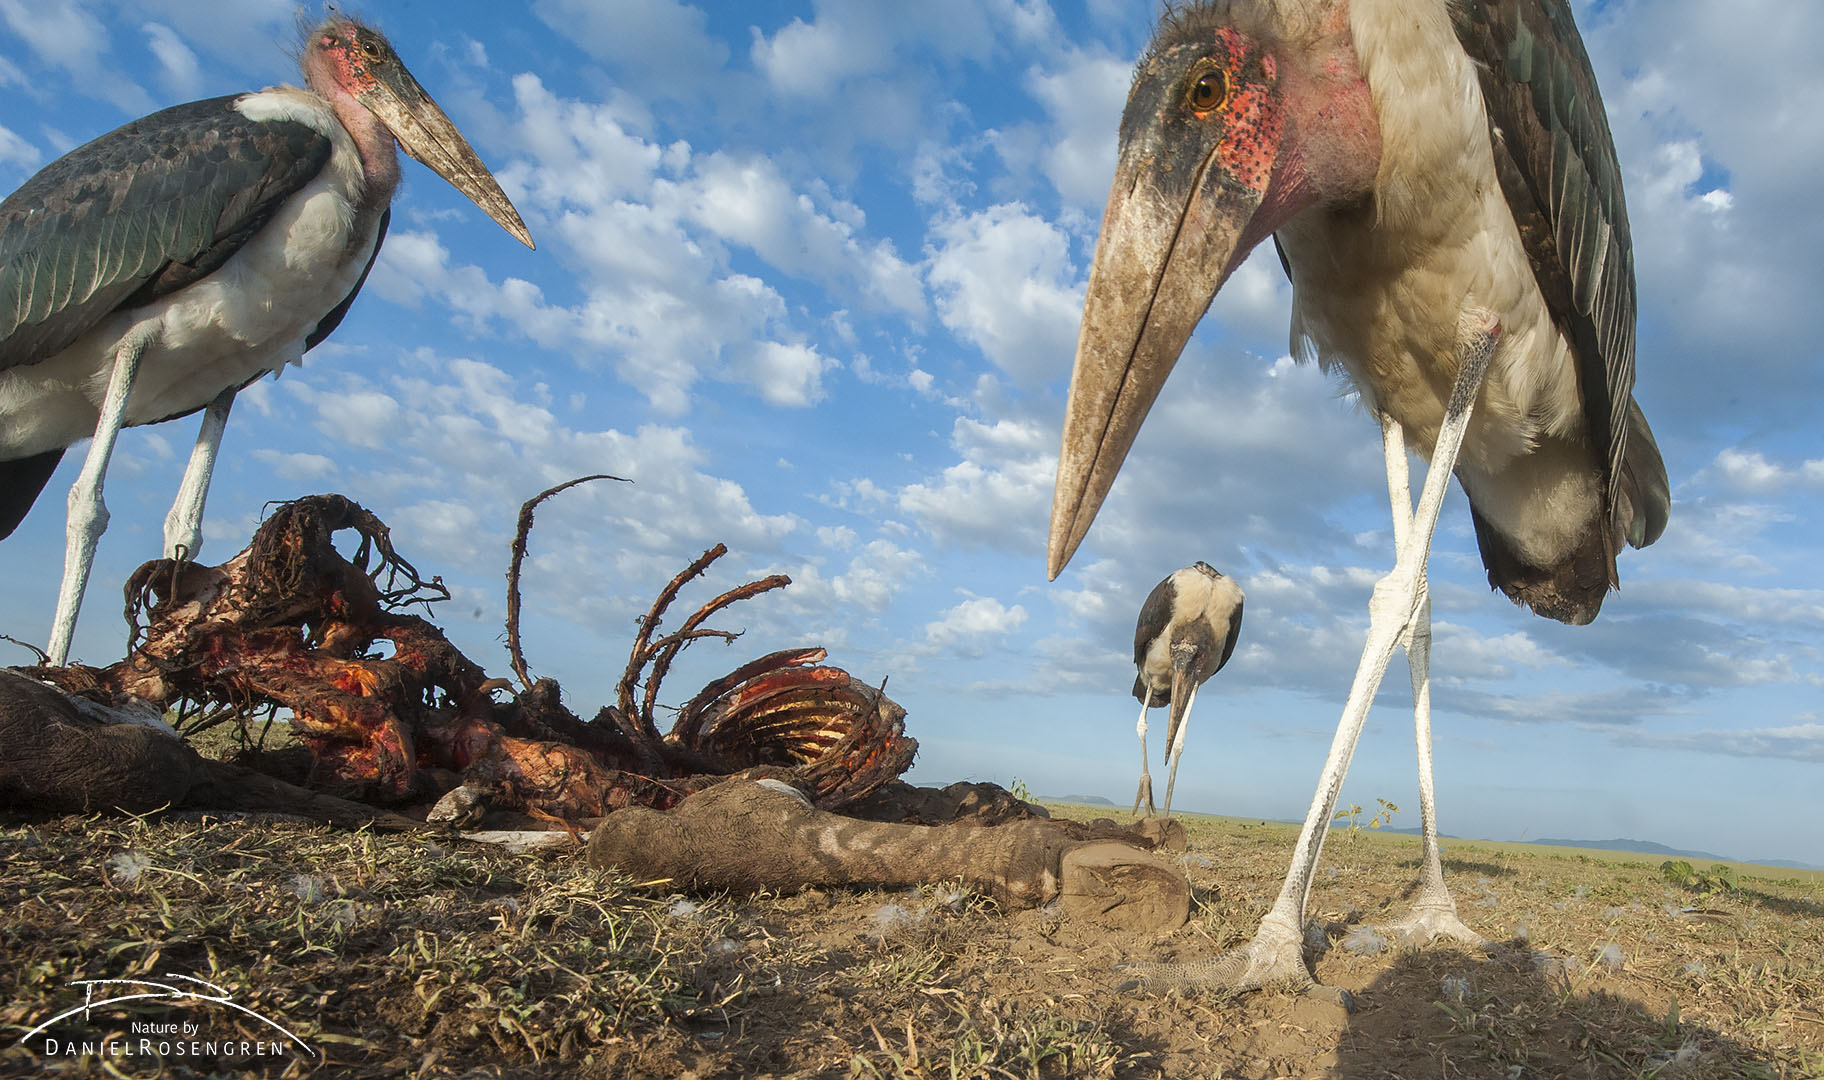 A Marabou stork towering over the camera. © Daniel Rosengren